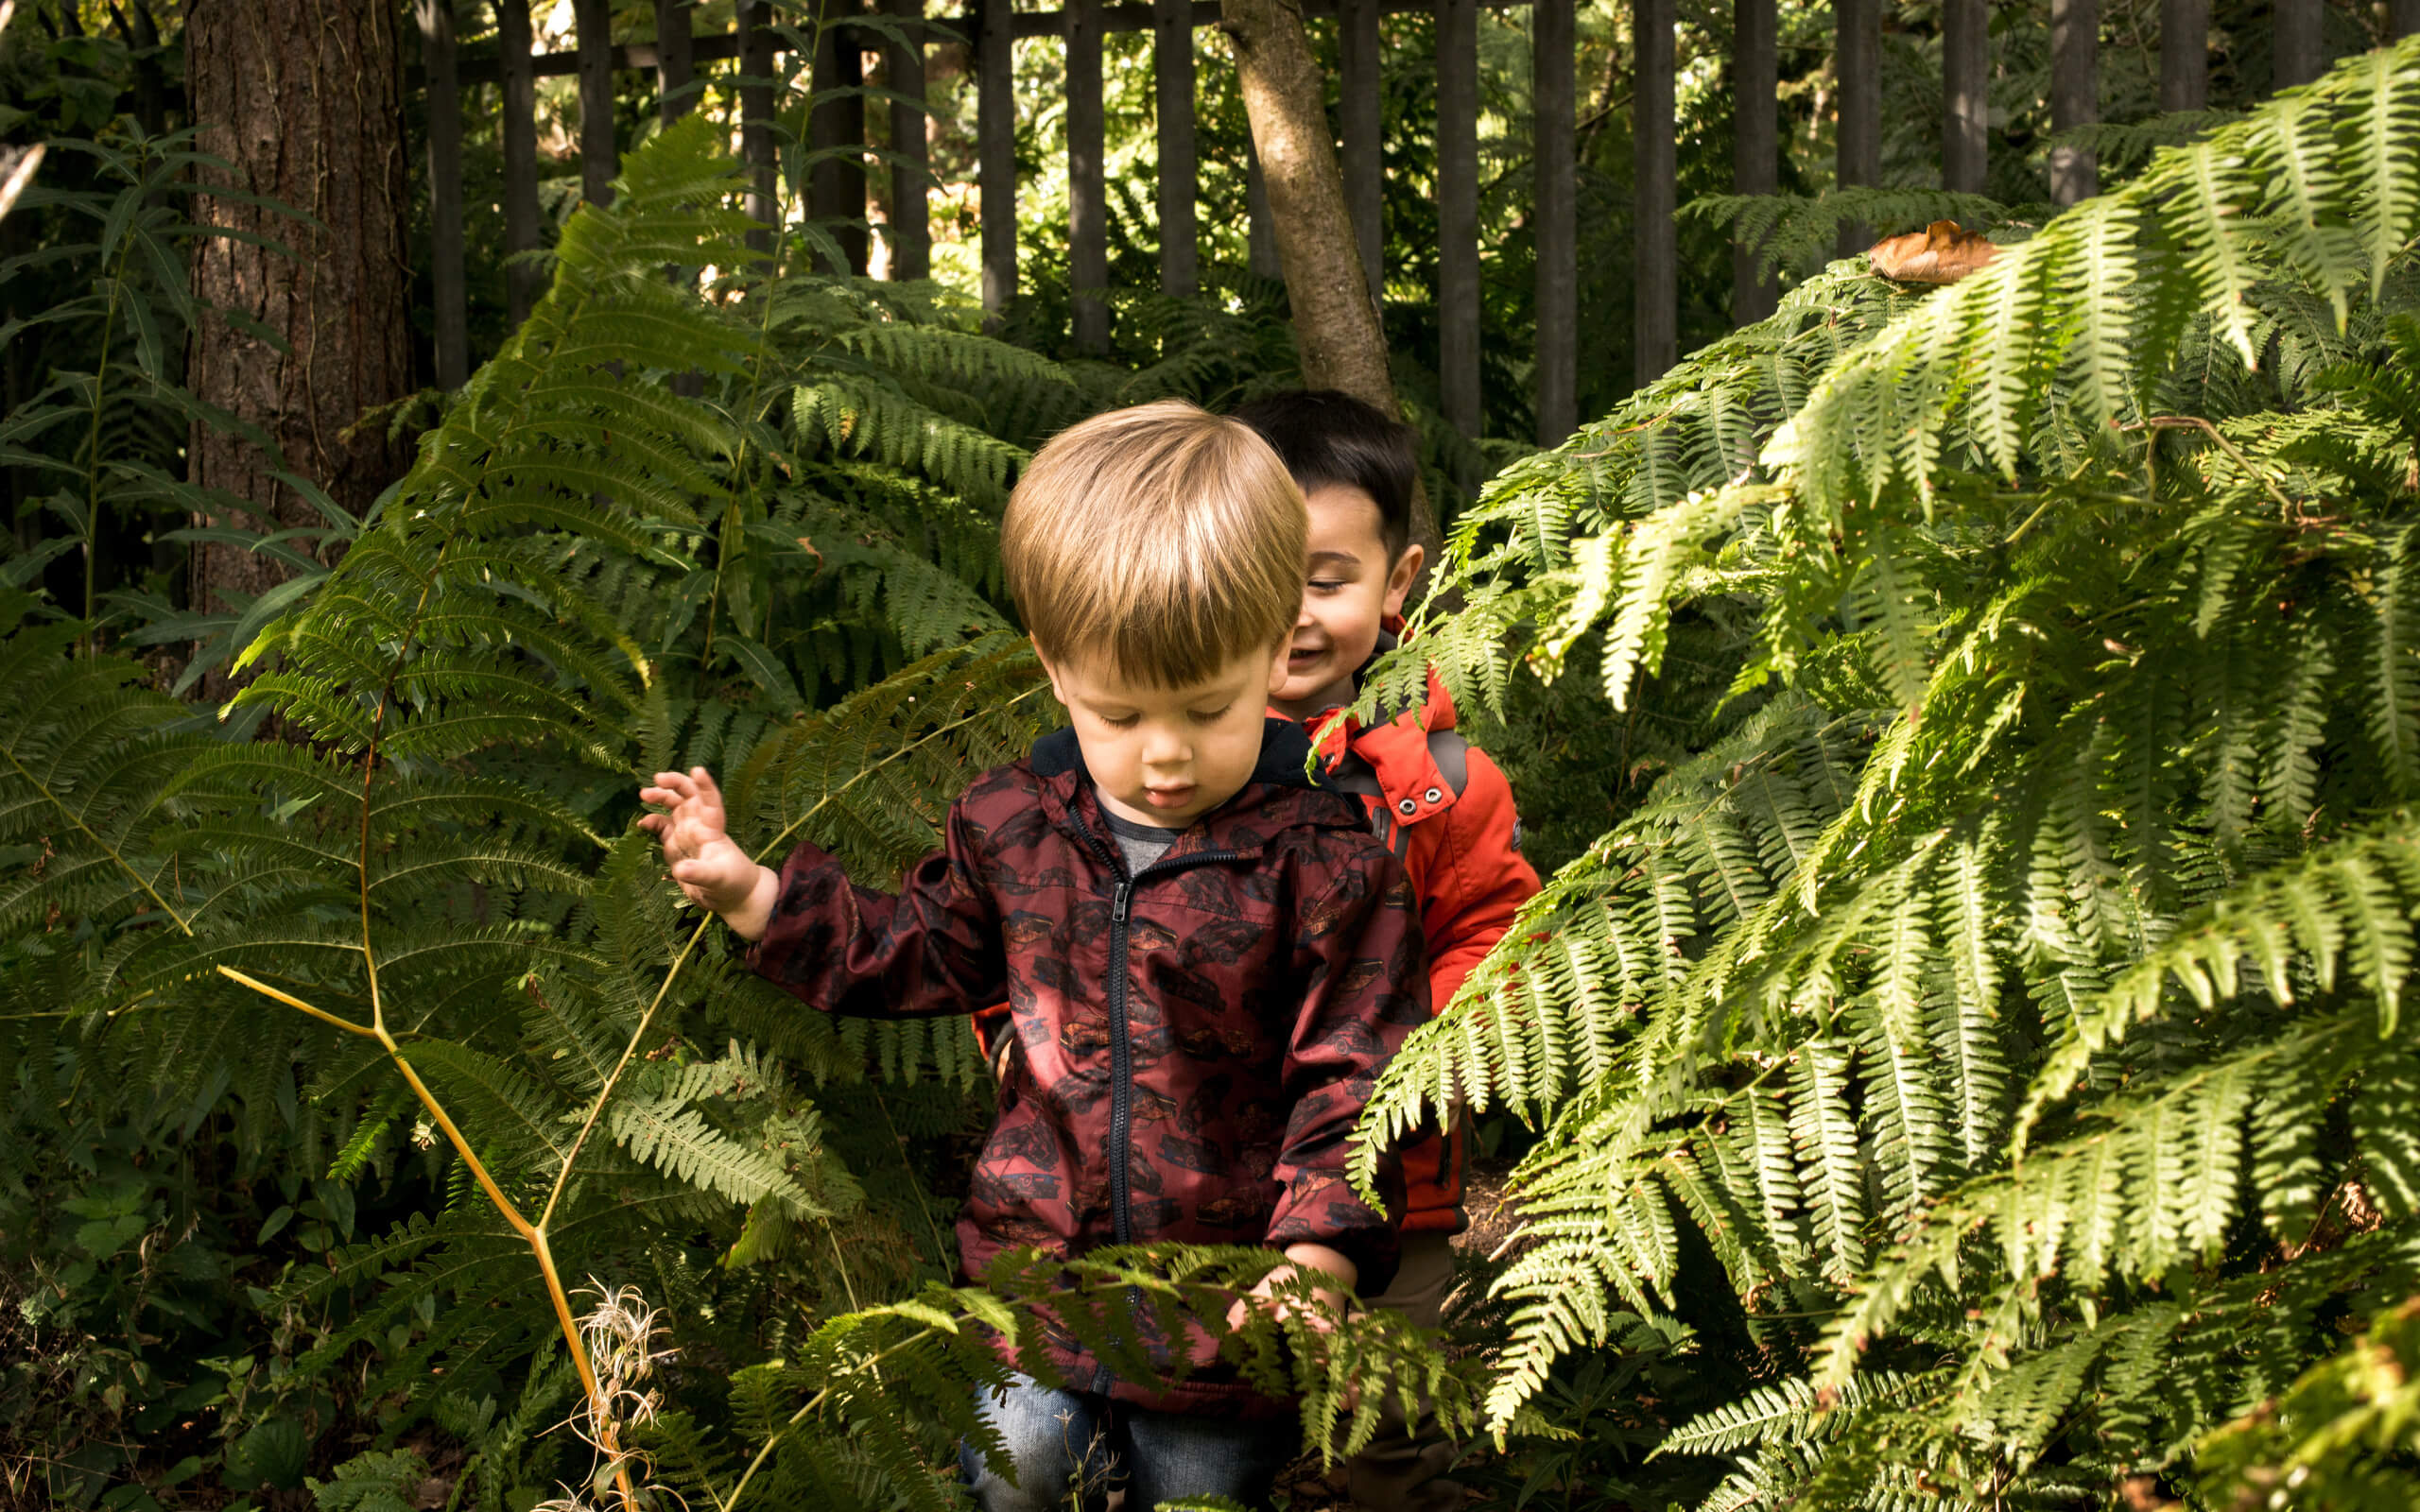 Children playing in a forest area